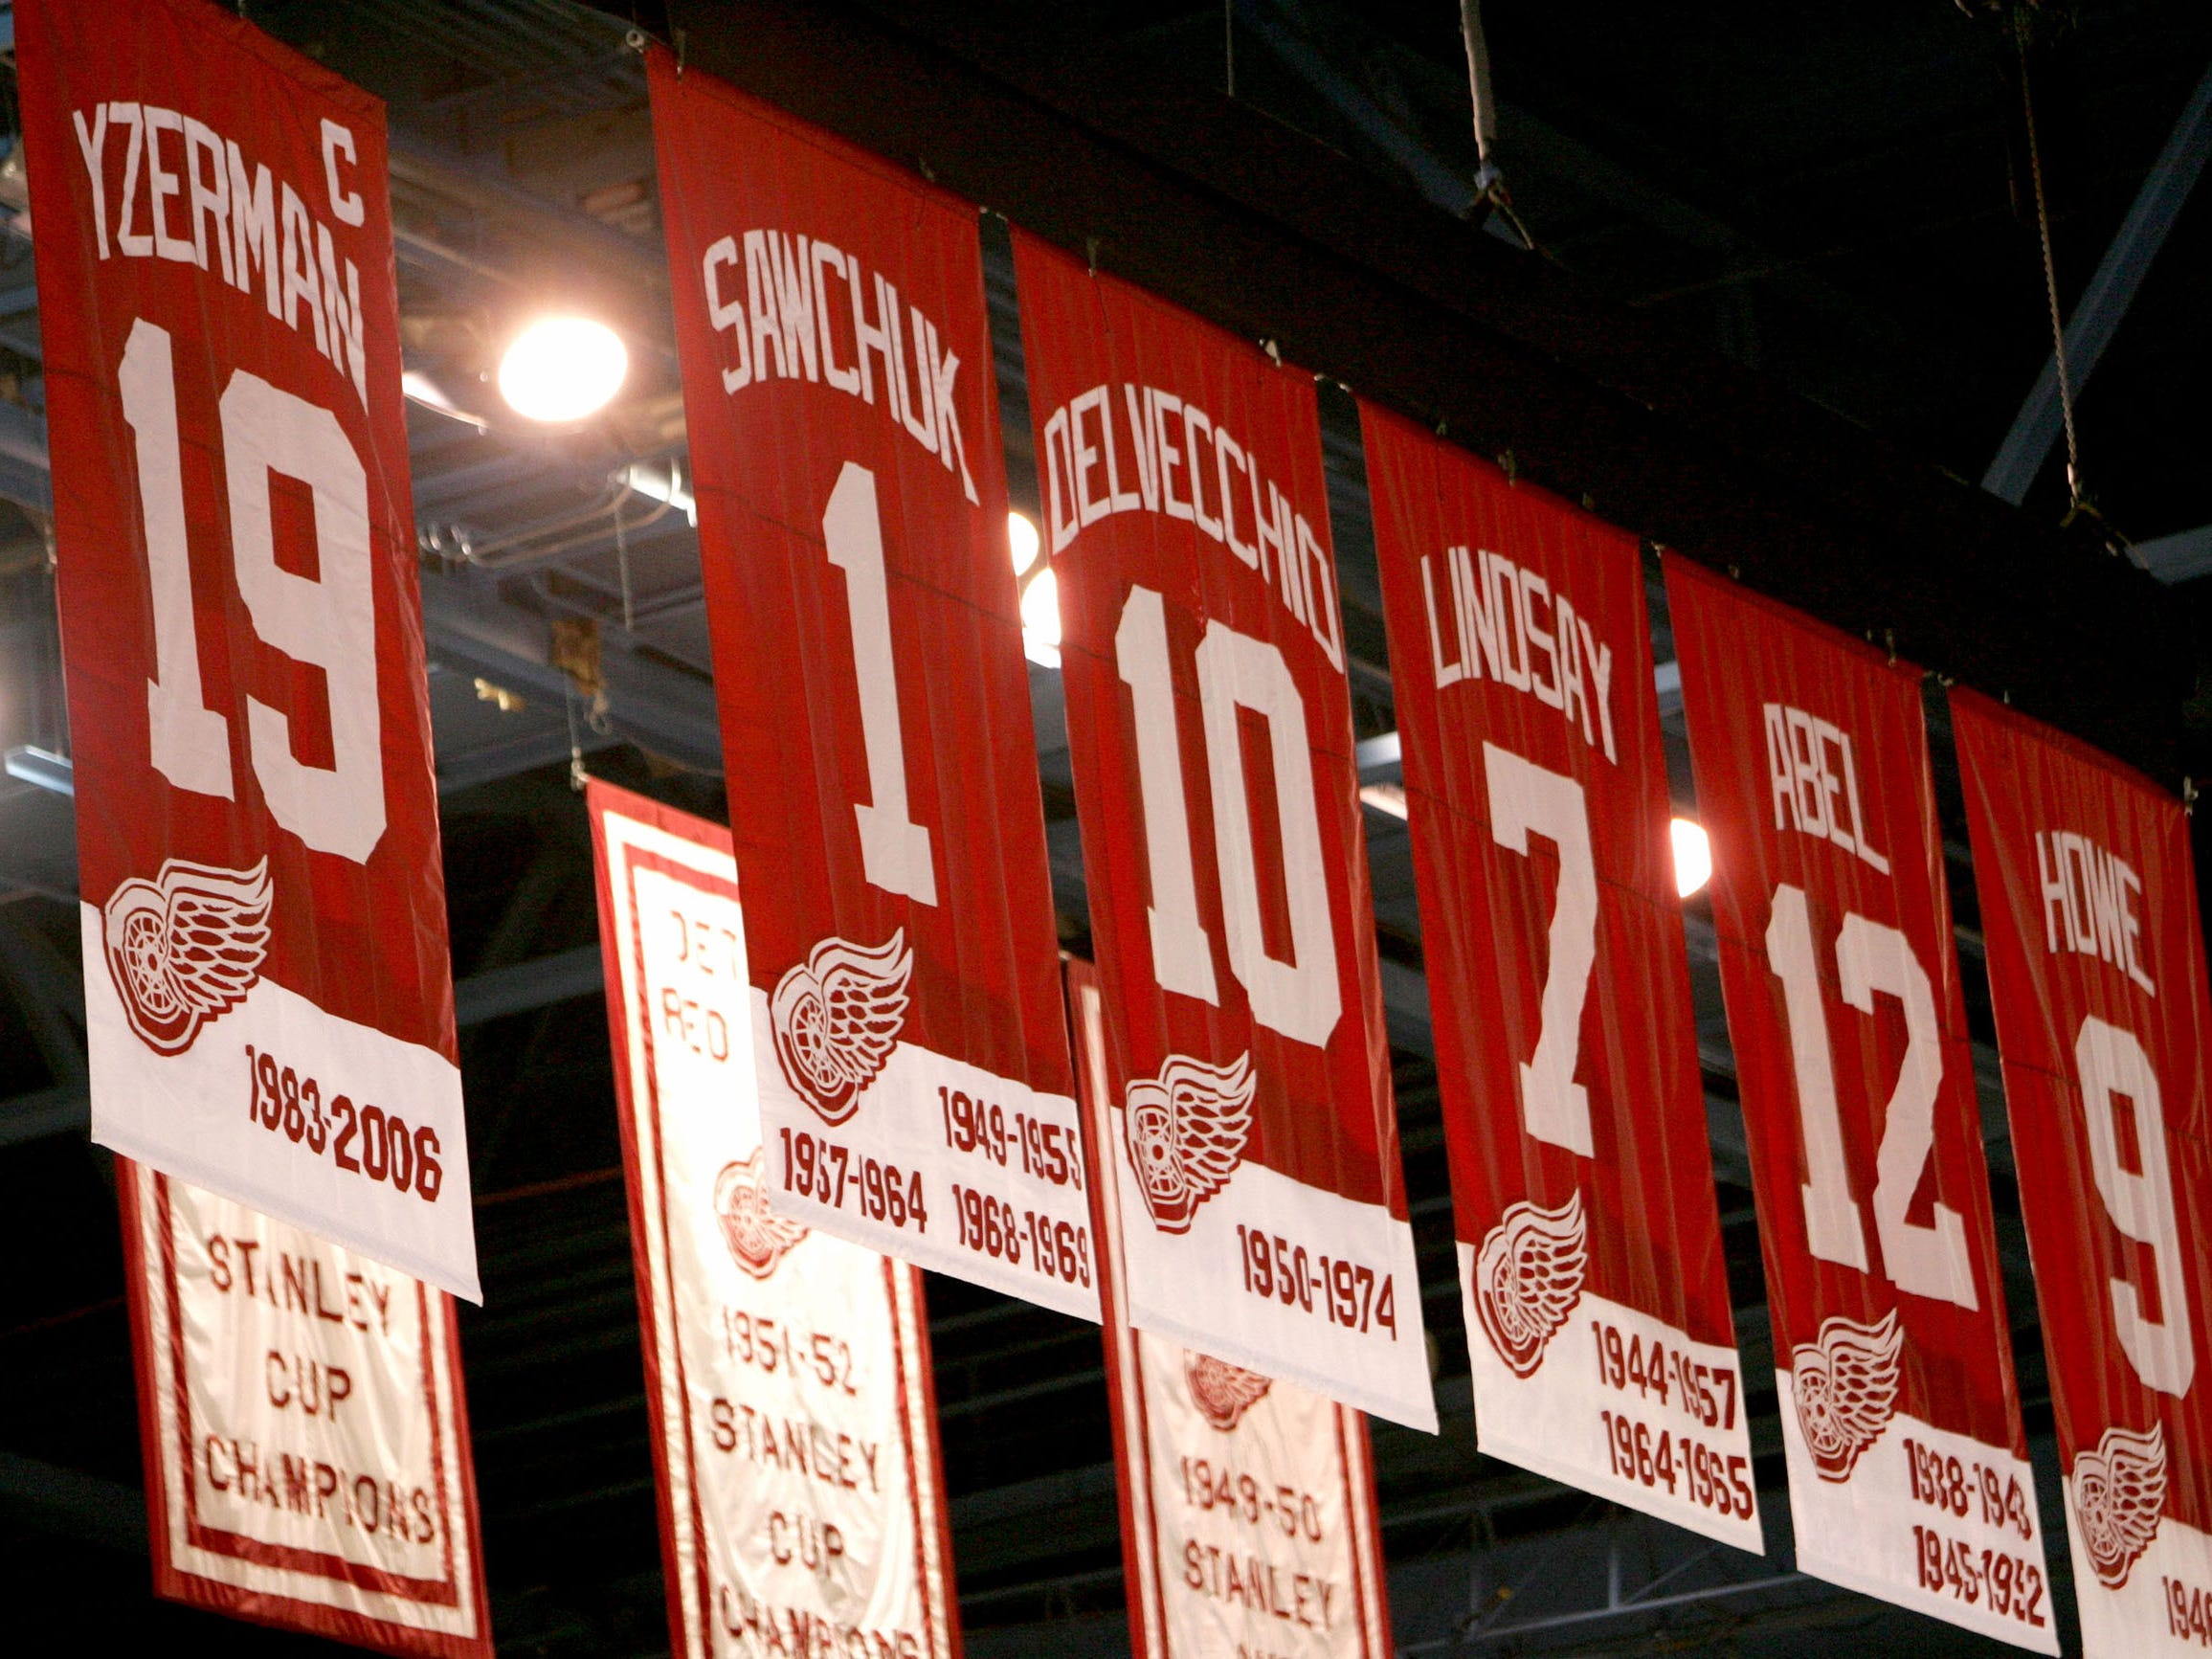 The retired jersey of Red Wings Ted Lindsay hangs in the rafters of Joe Louis Arena in Detroit.